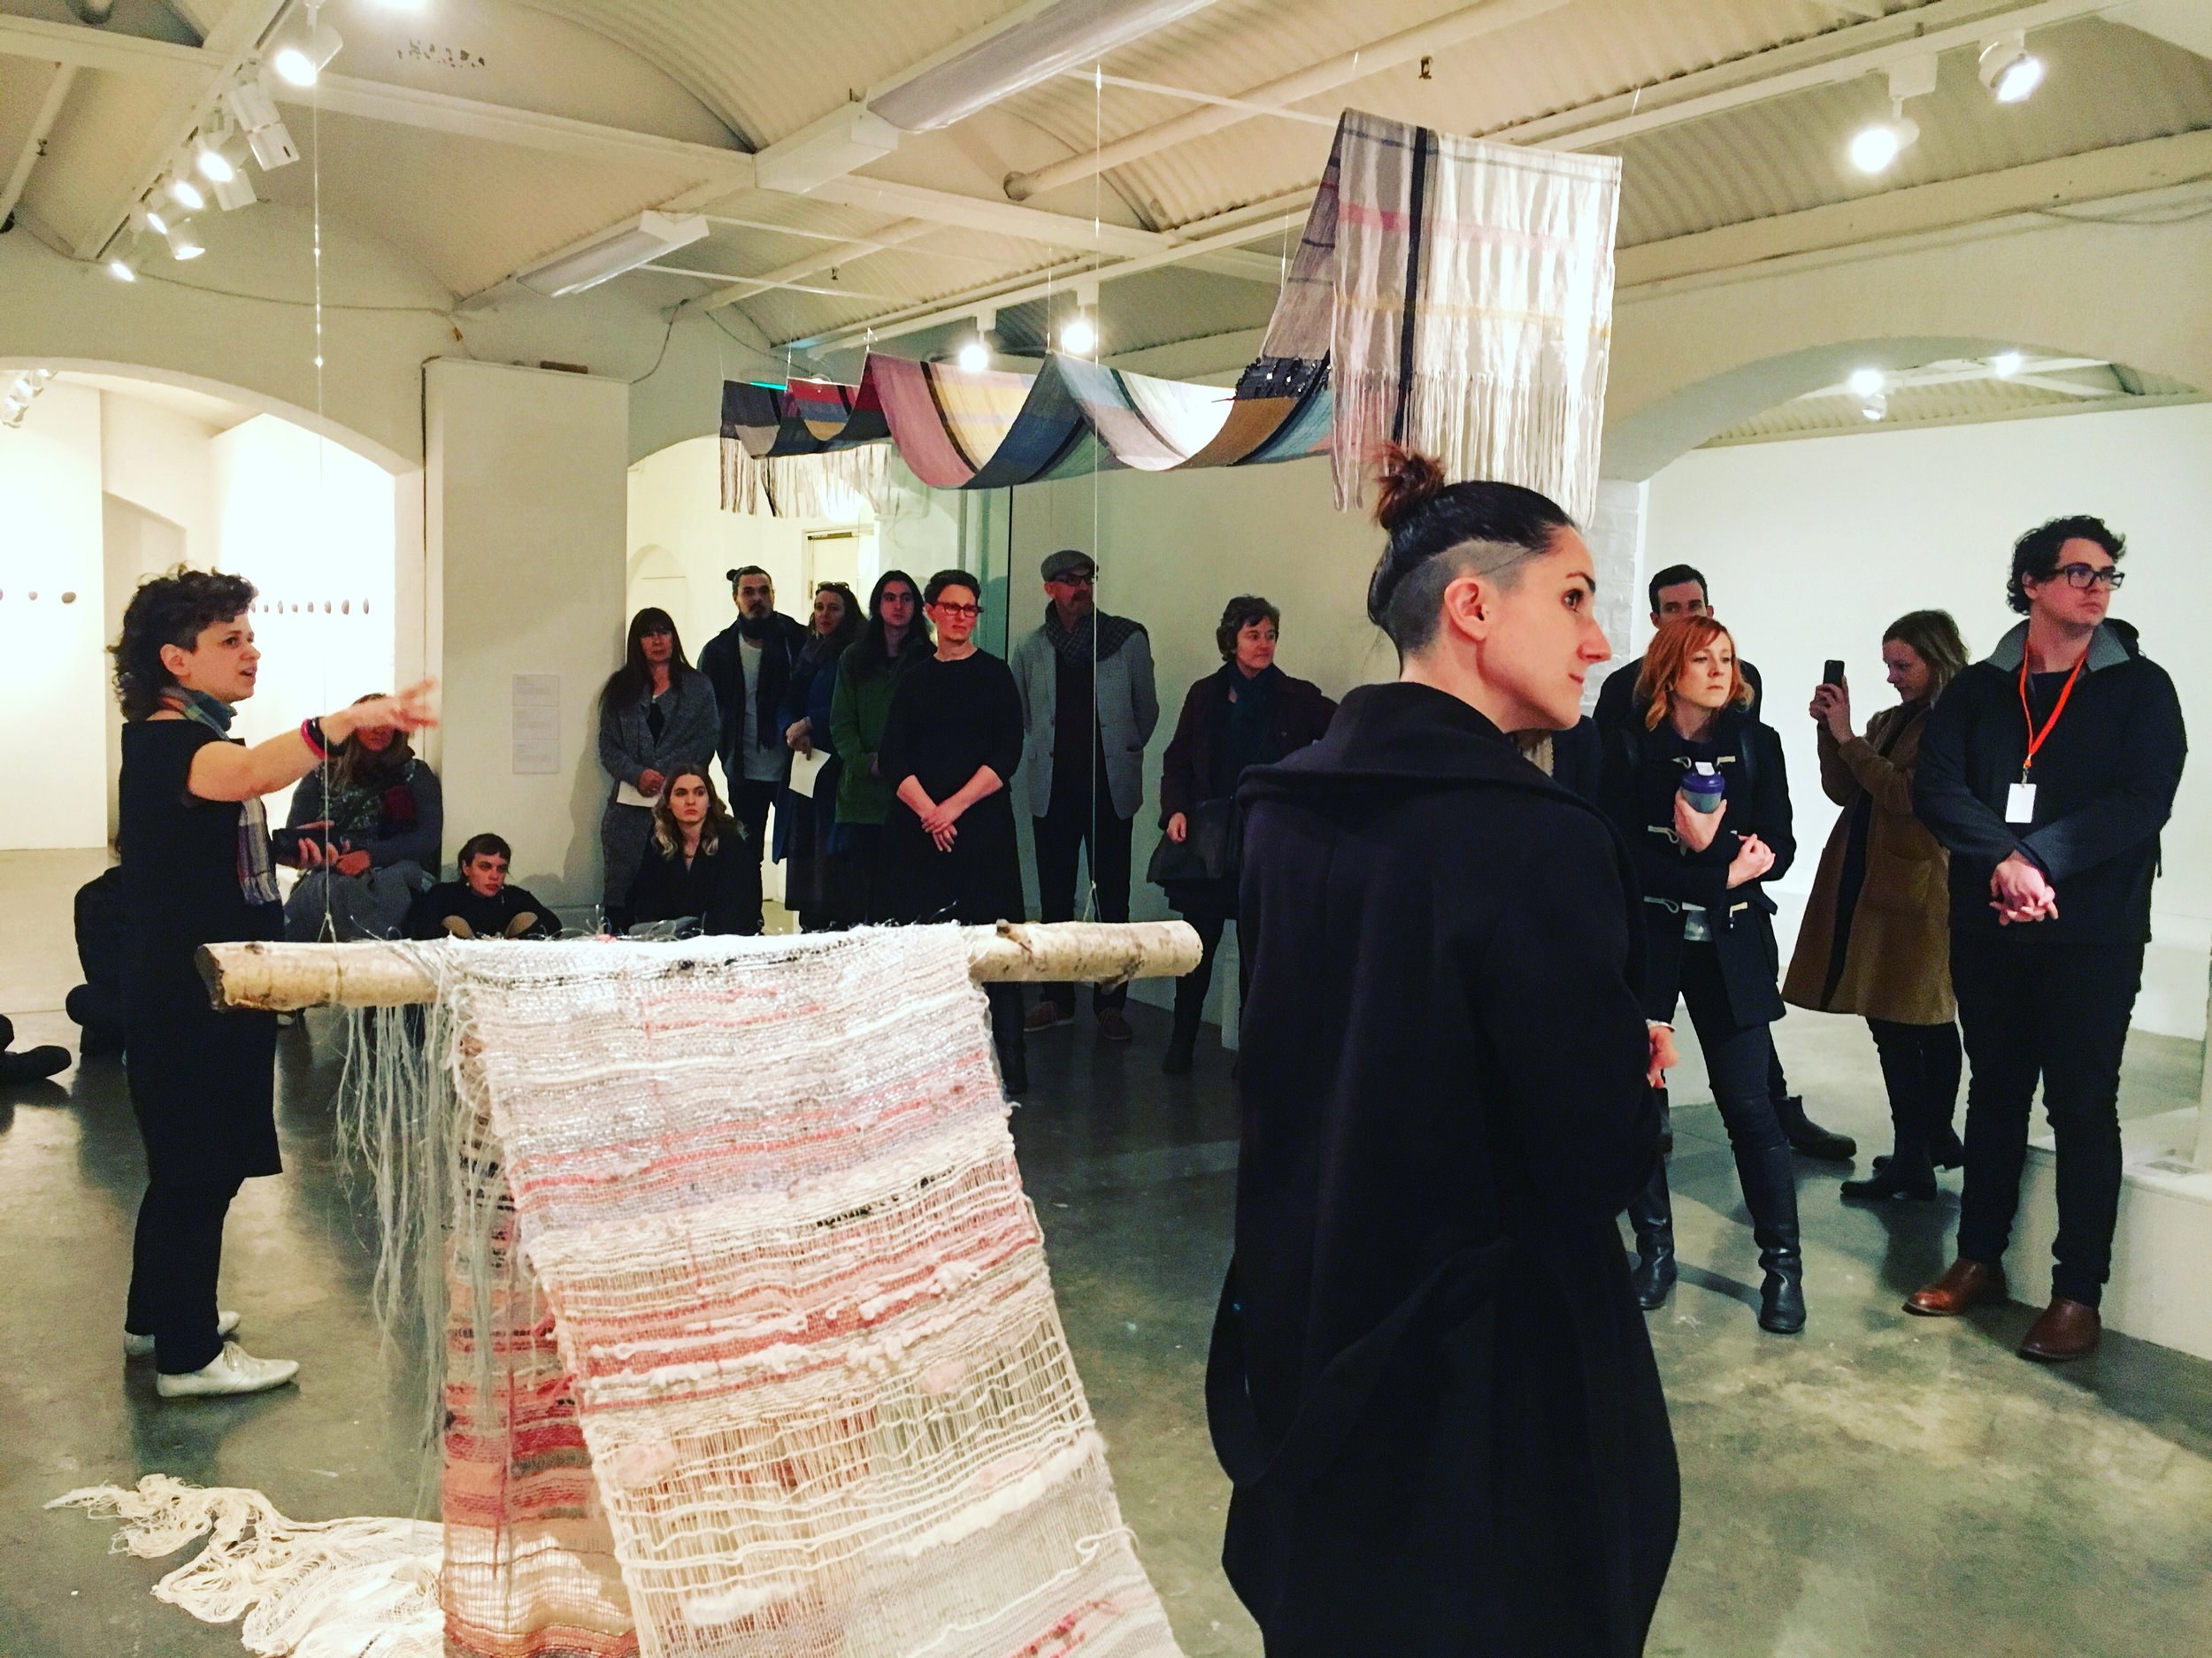 Ana Petidis' artist talk, 26 August 2016